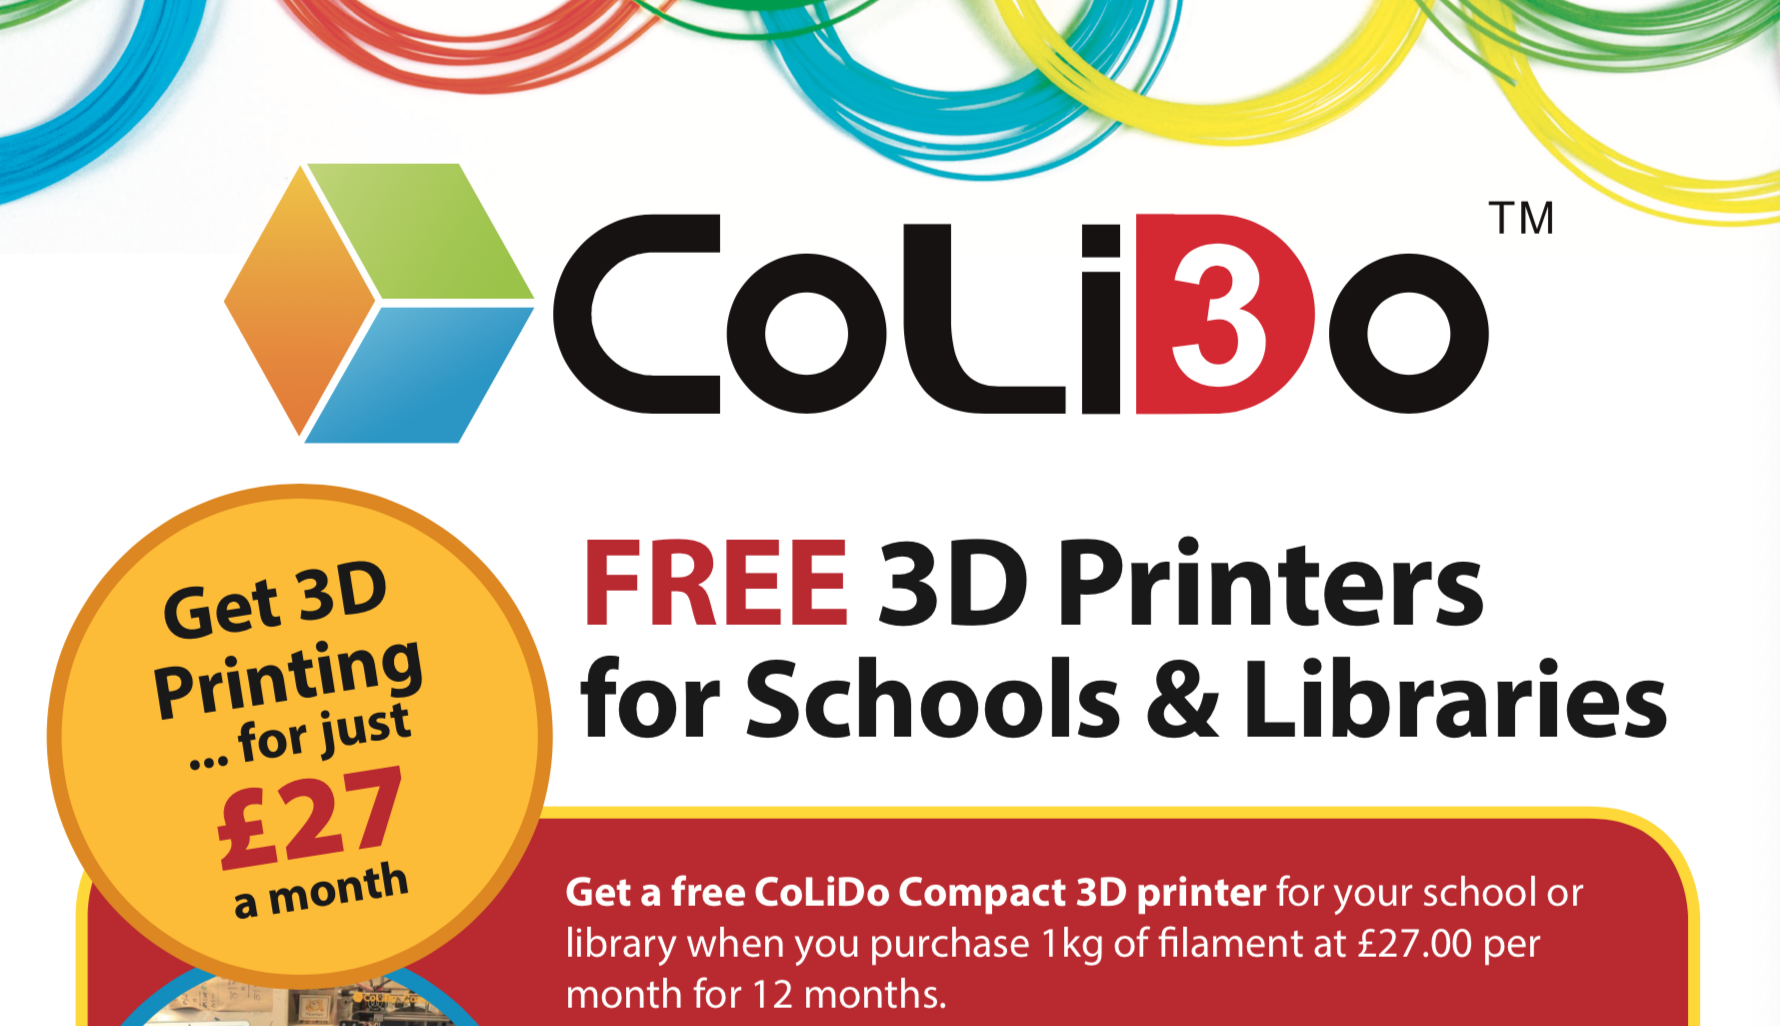 Stunning 3D printer offer for schools and libraries